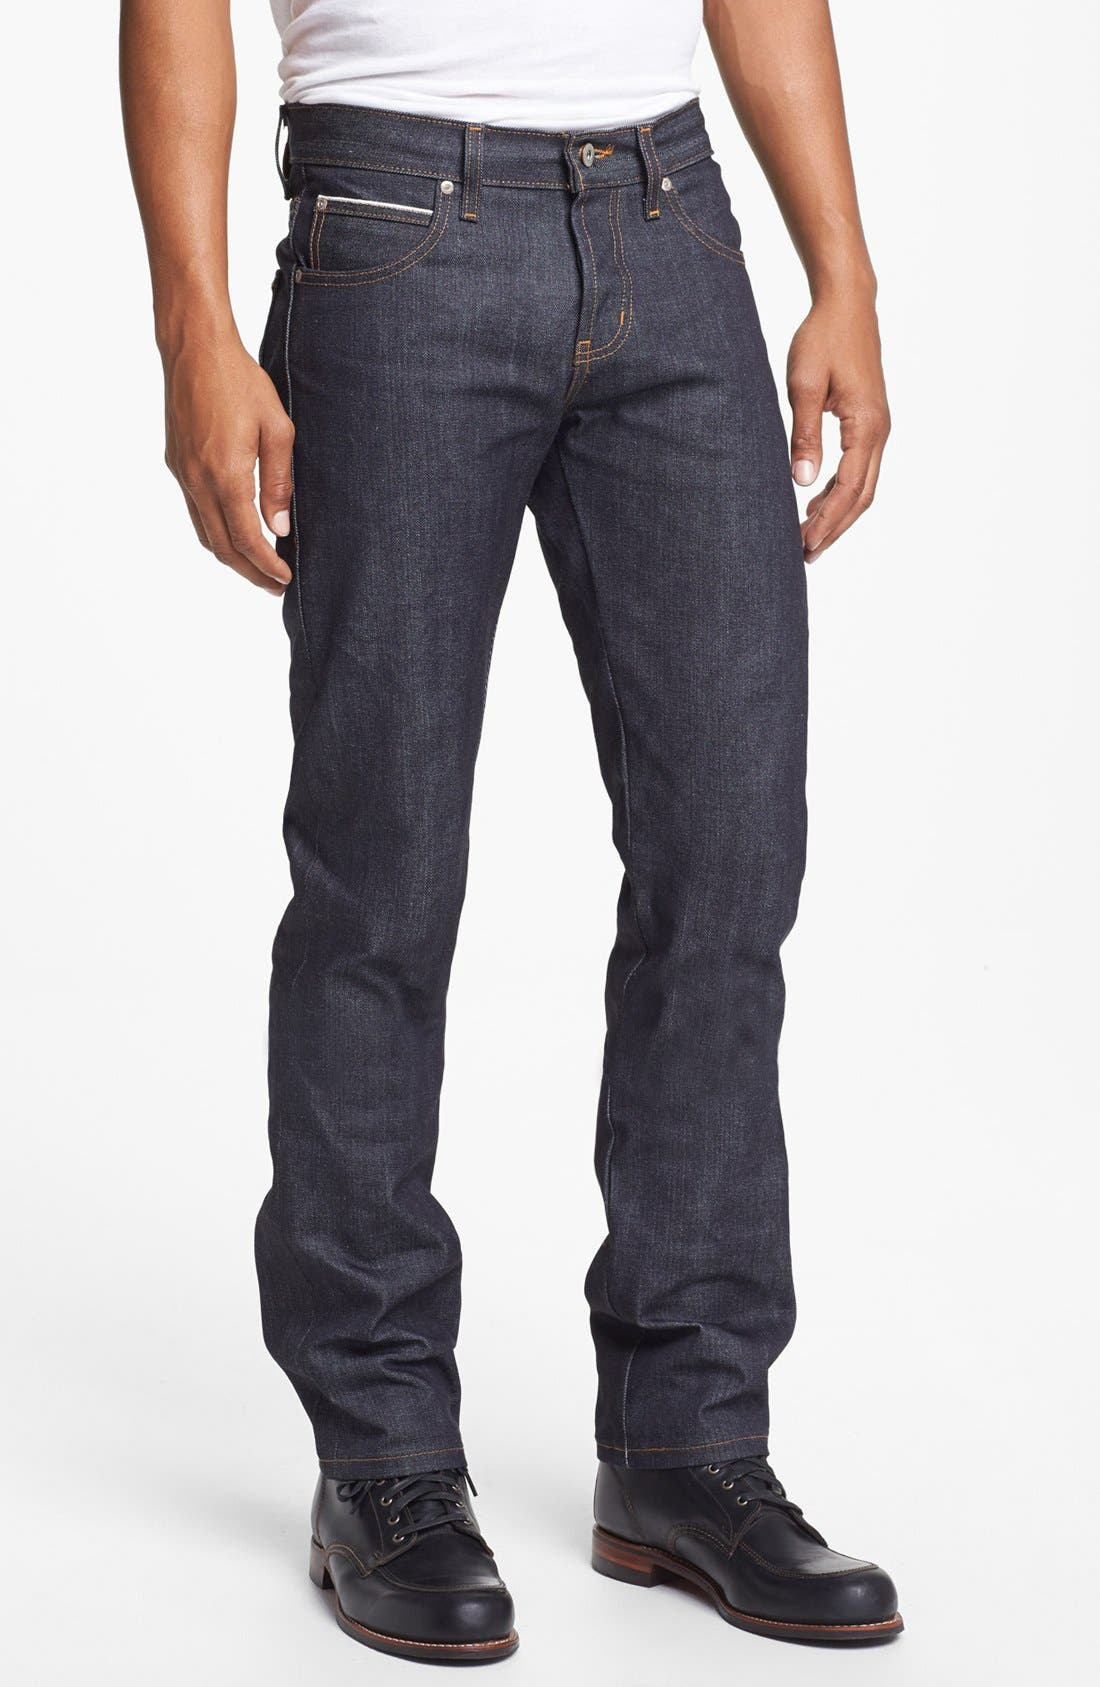 Main Image - Naked & Famous Denim Super Skinny Guy Skinny Fit Raw Selvedge Jeans (Left Hand Twill Selvedge)